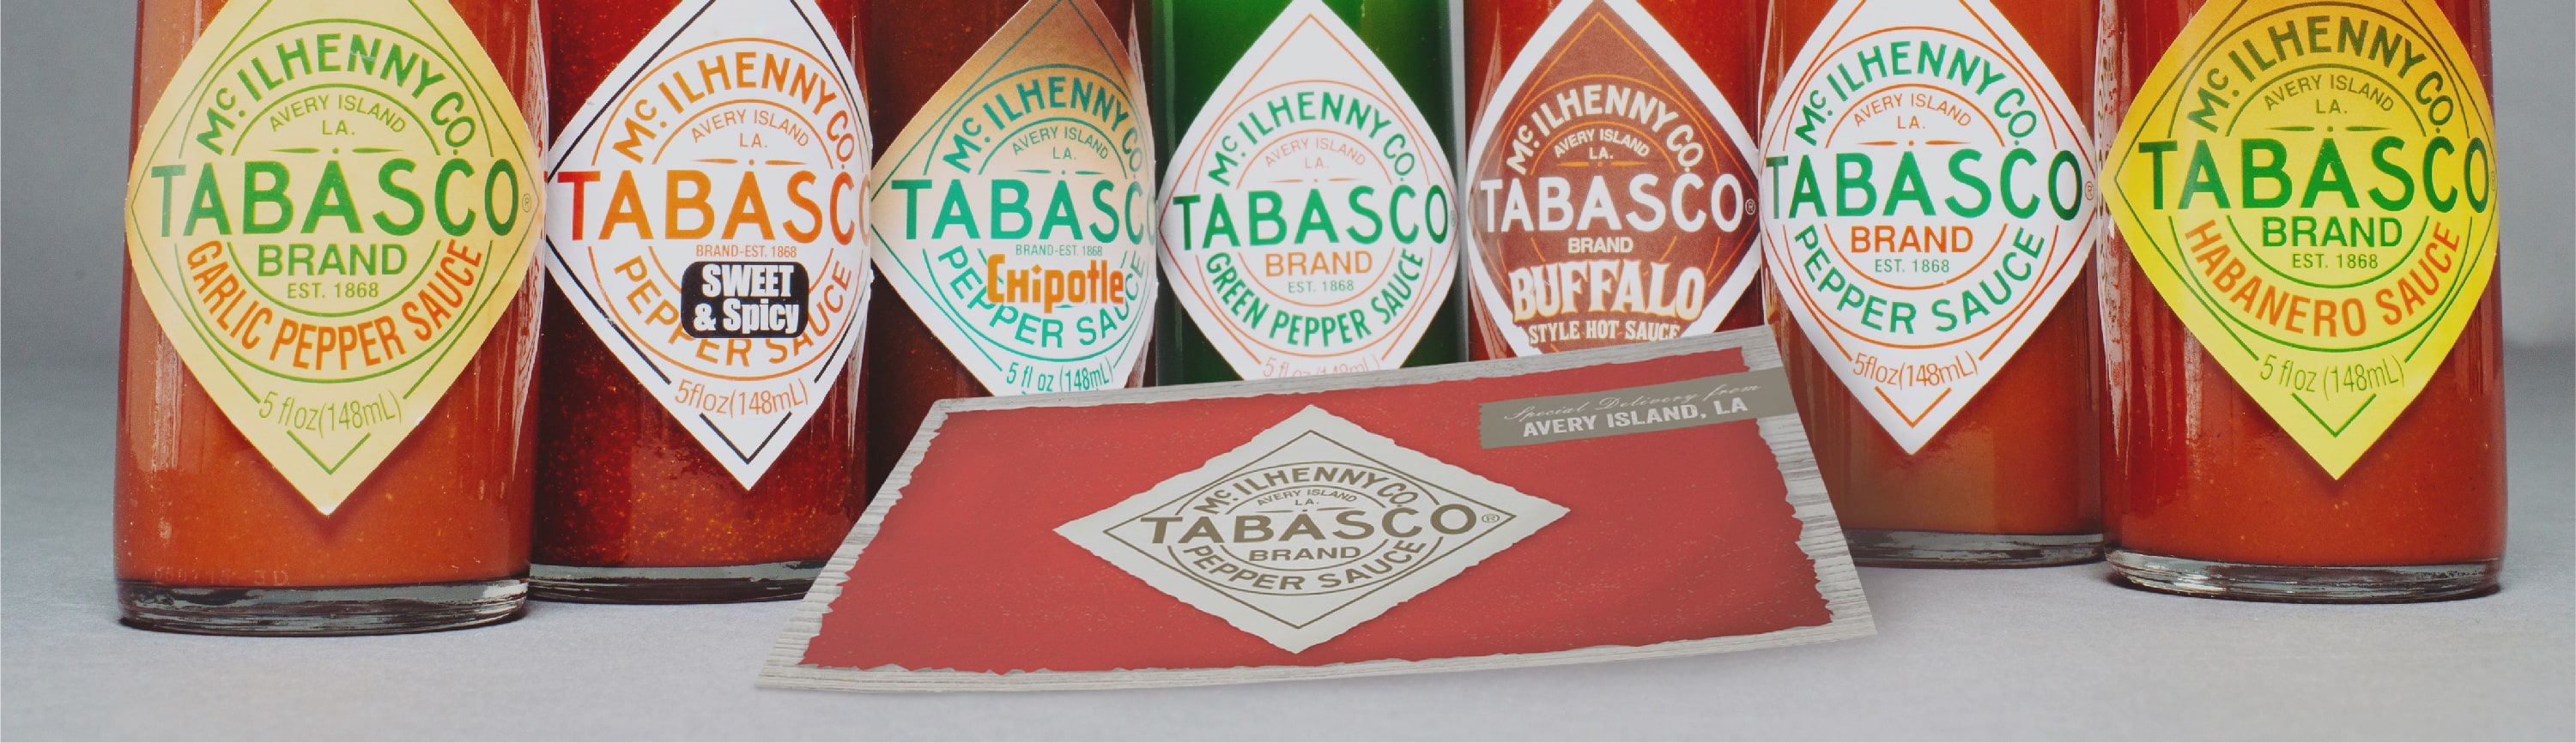 https://countrystore.tabasco.com/media/catalog/category/CorporateGifts_Category_Banner_WR.jpg